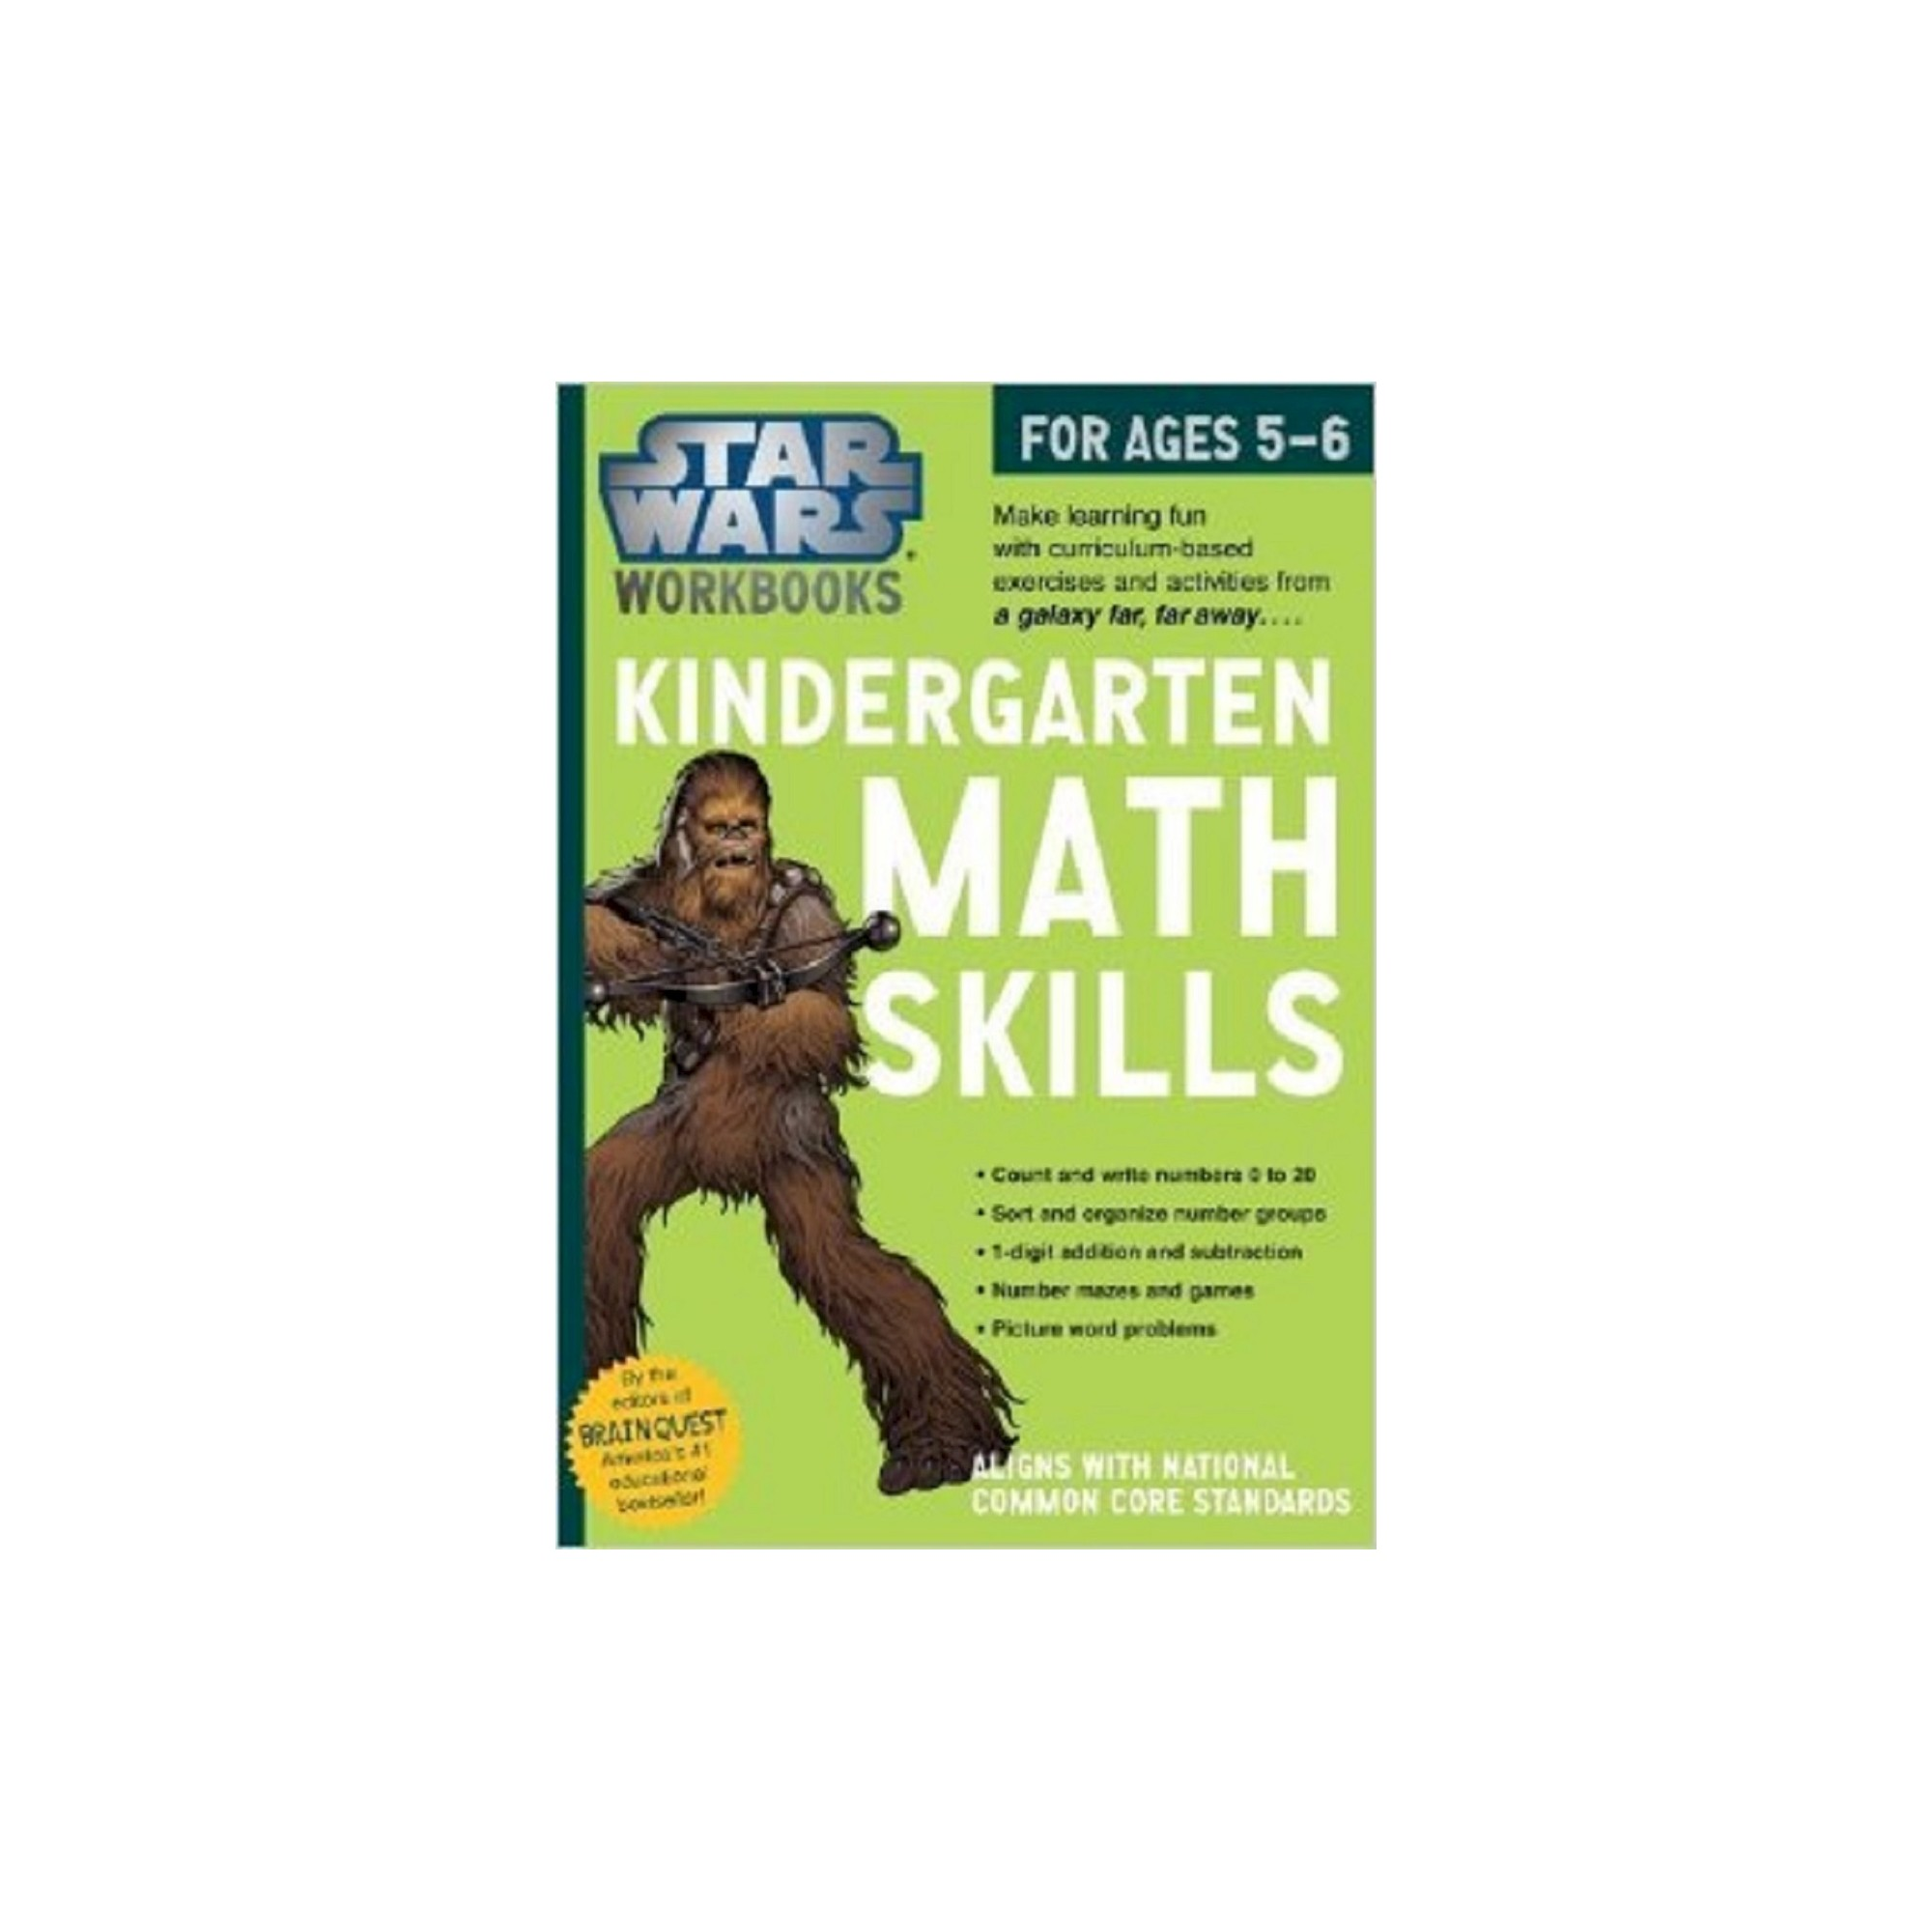 Star Wars Kindergarten Math Skills For Ages 5 6 By